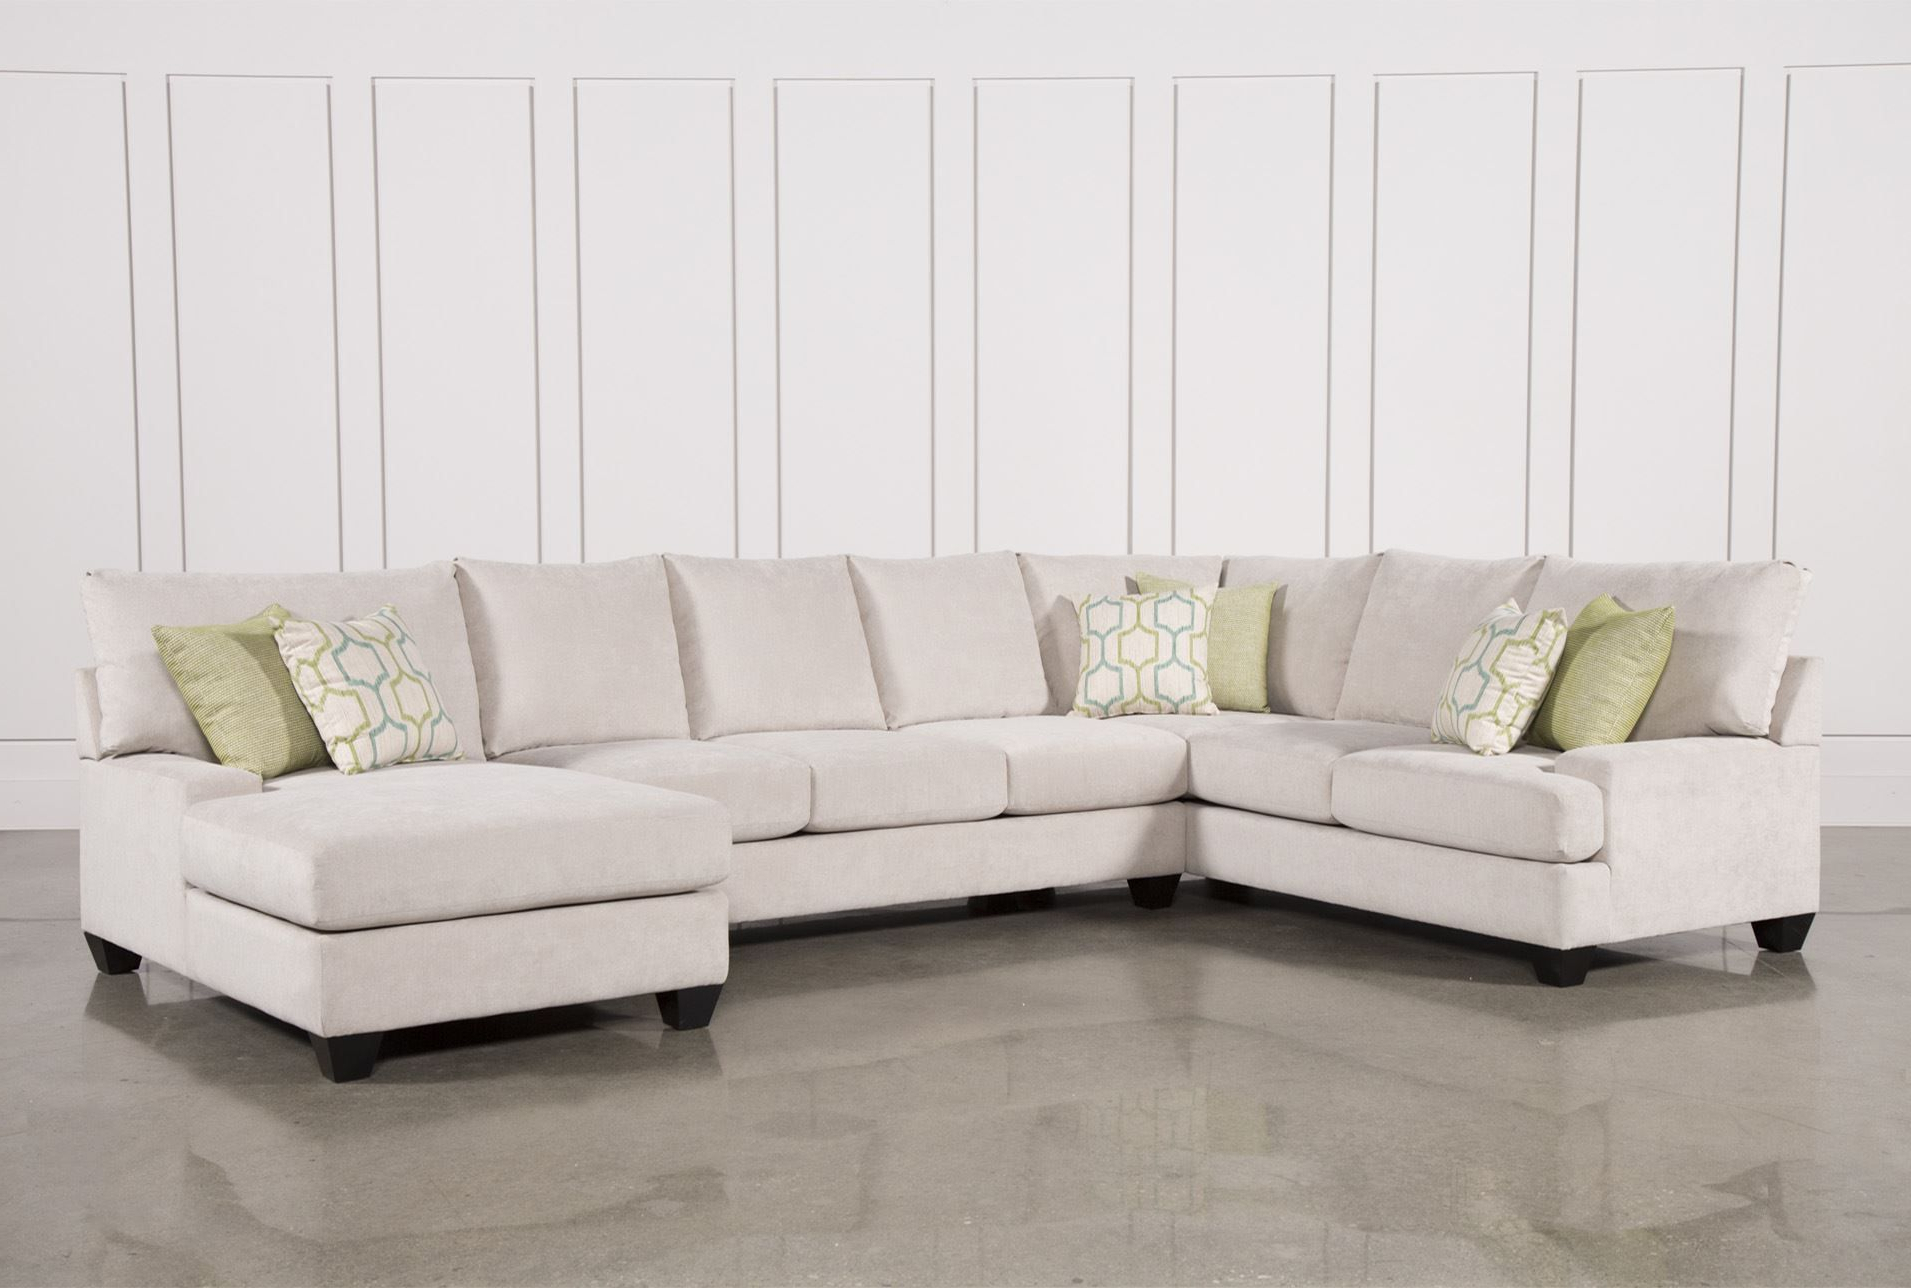 Adeline 3 Piece Sectionals For Latest Harper Foam 3 Piece Sectional W/raf Chaise (Gallery 8 of 20)